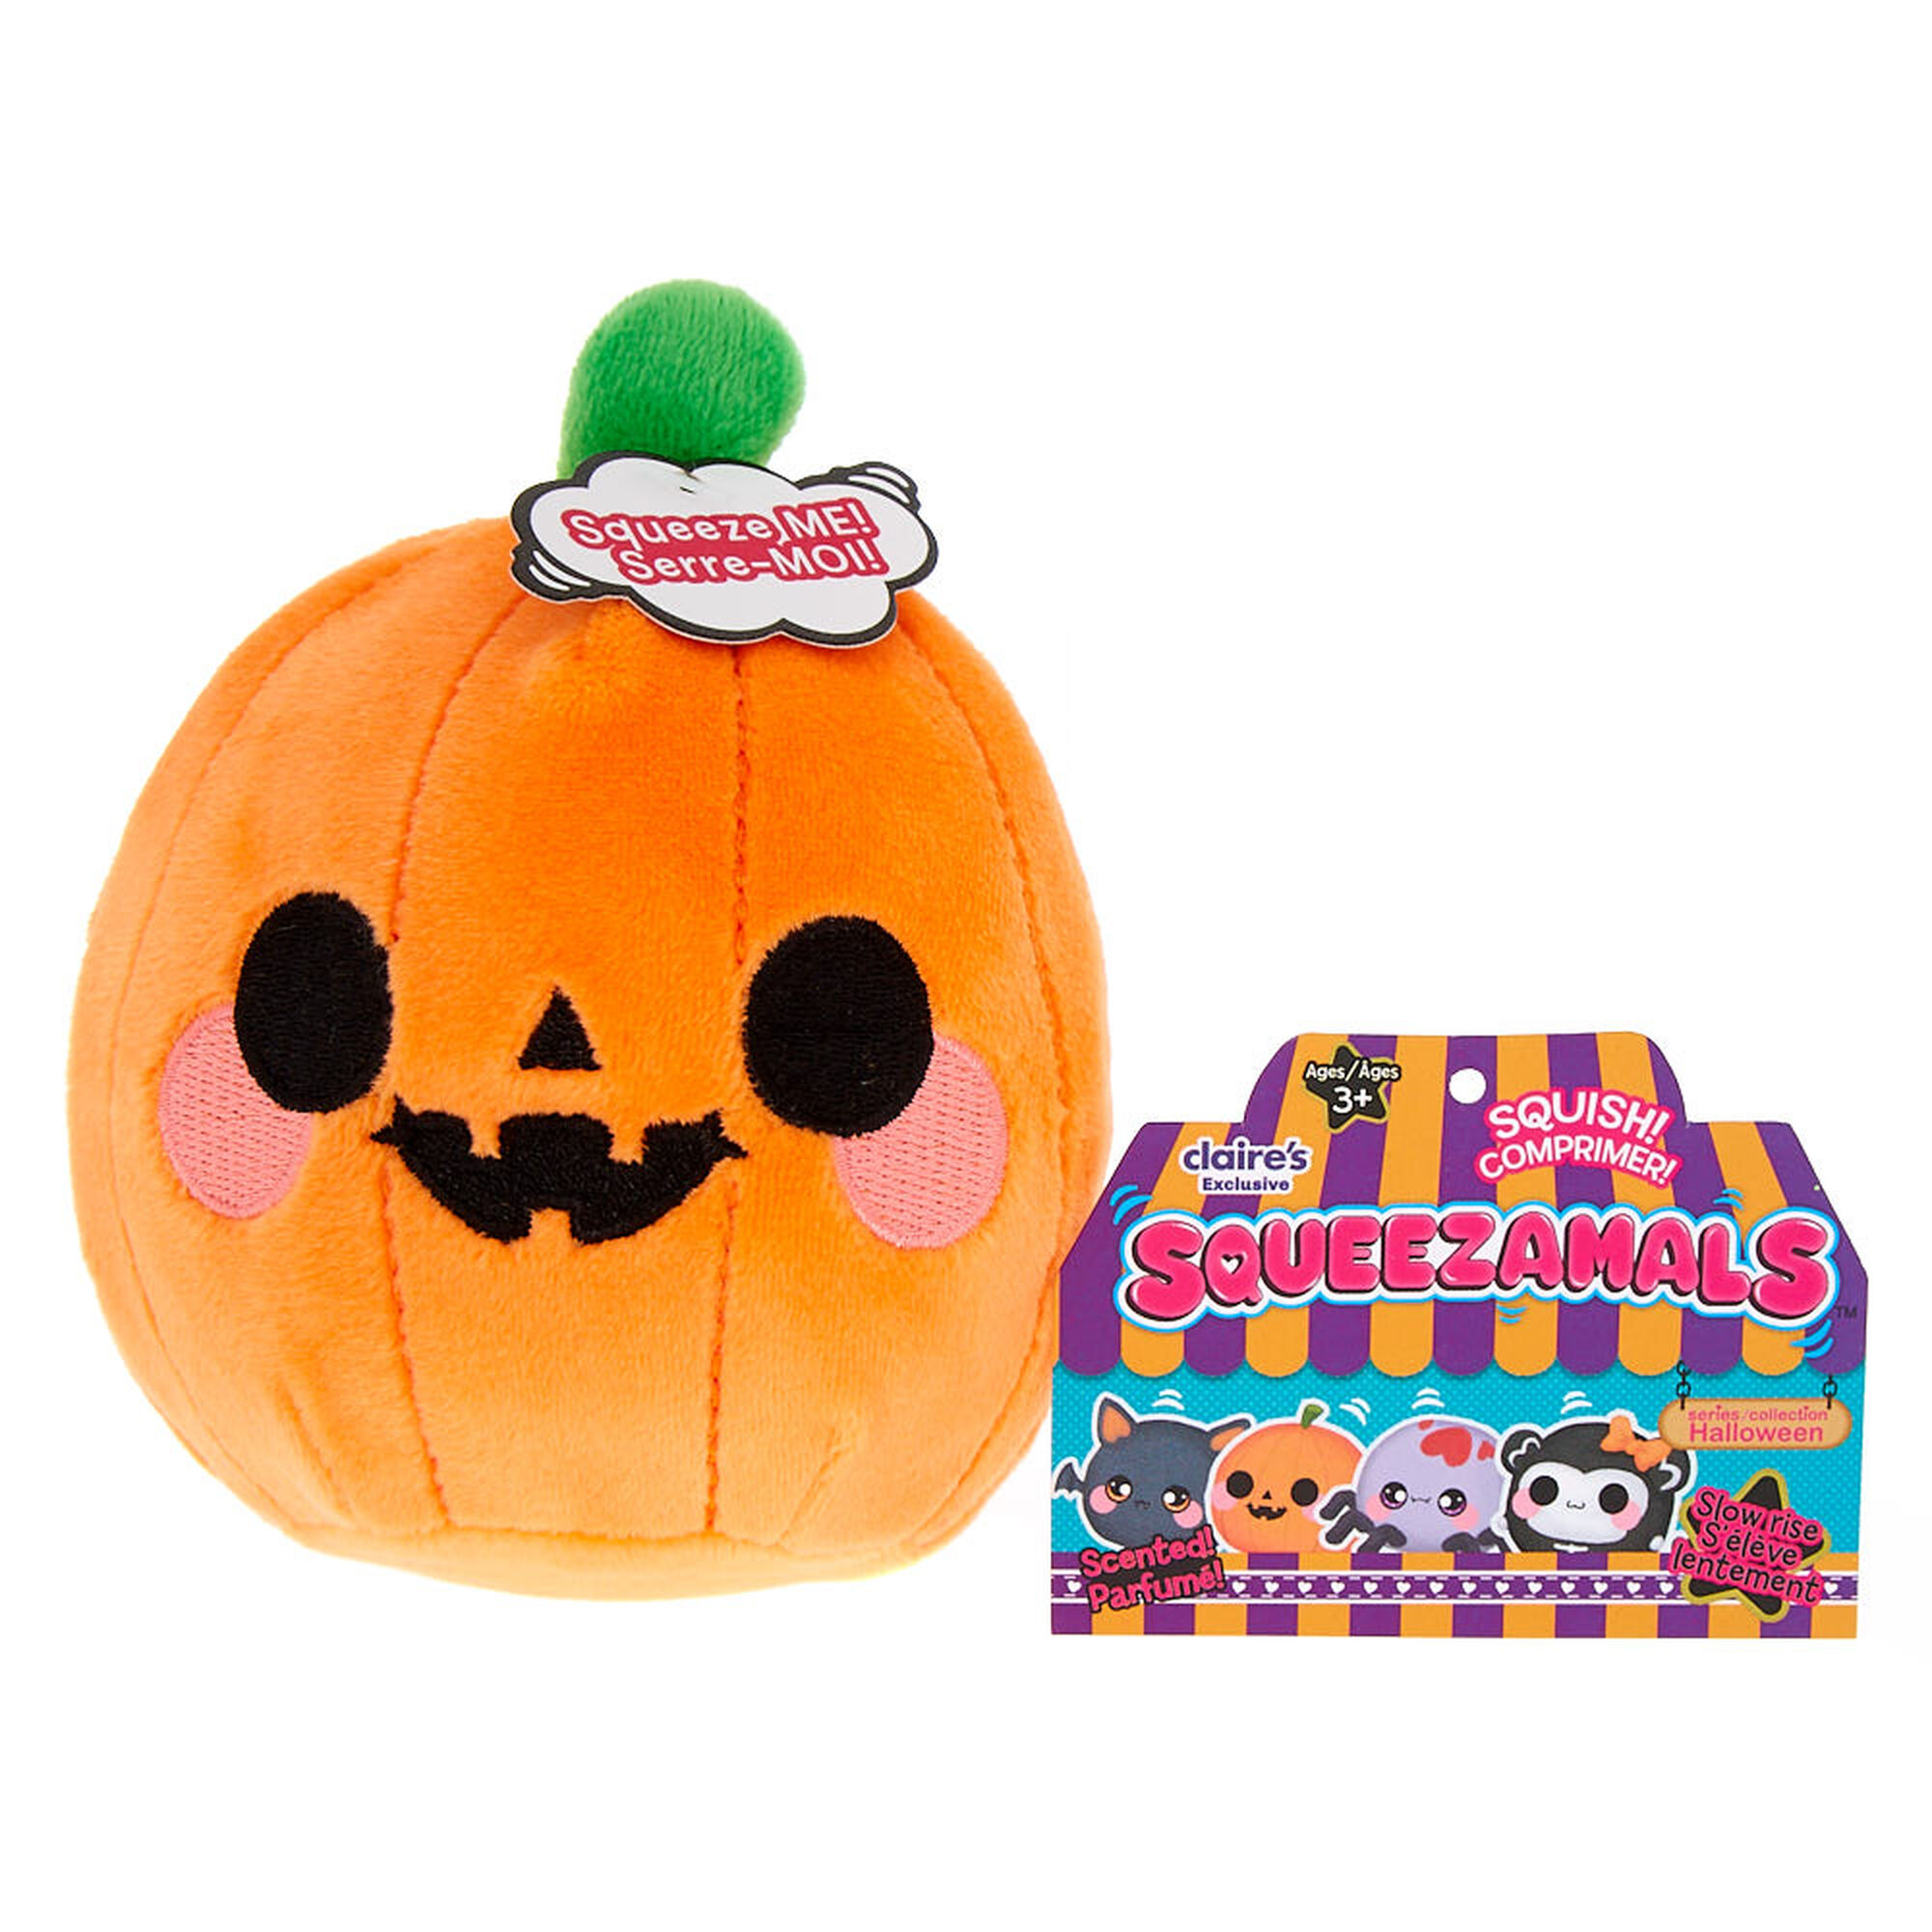 squeezamals scented peyton the pumpkin plush toy | claire's us